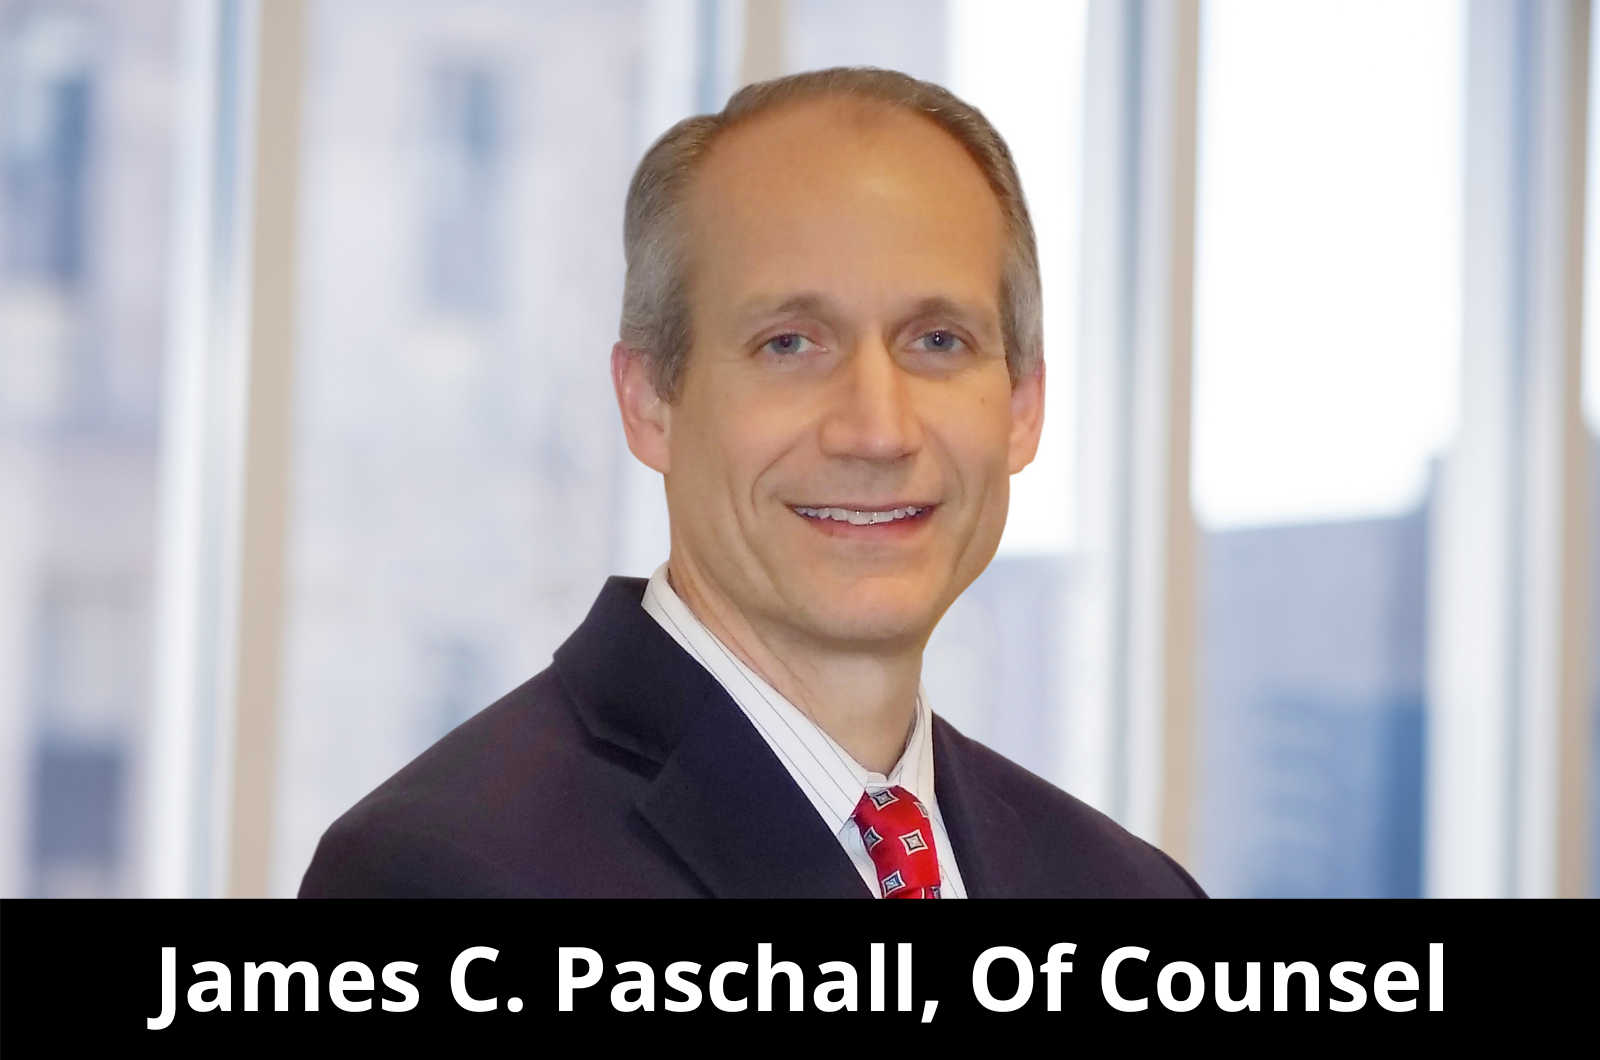 James C. Pashall